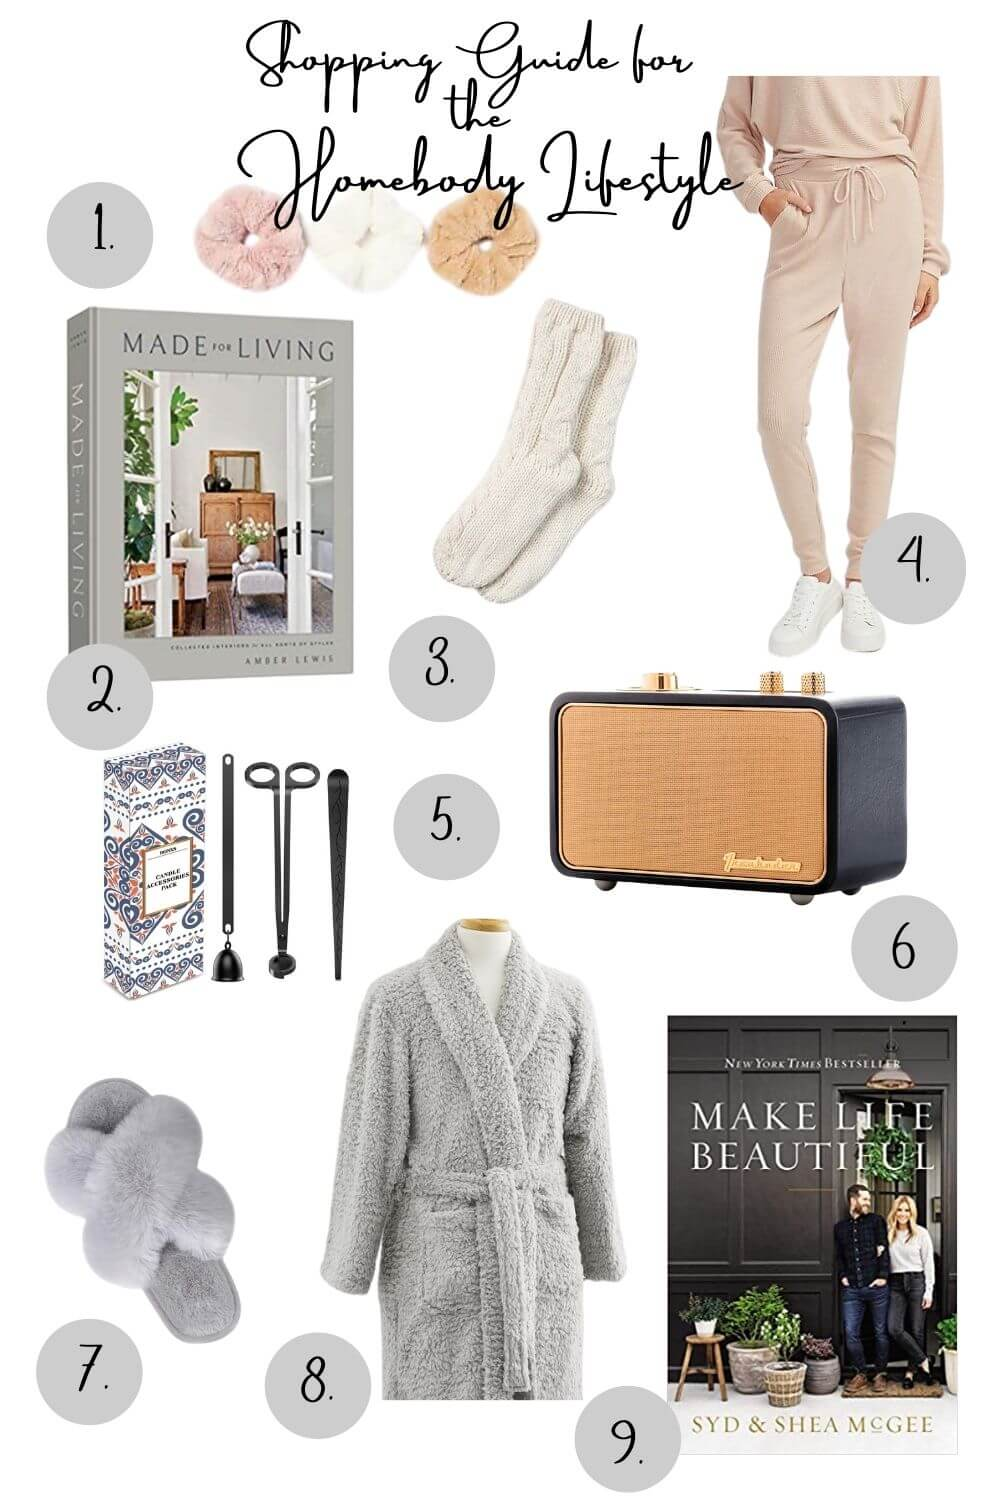 Welcome Home Sunday: Gift Guide for the Homebody